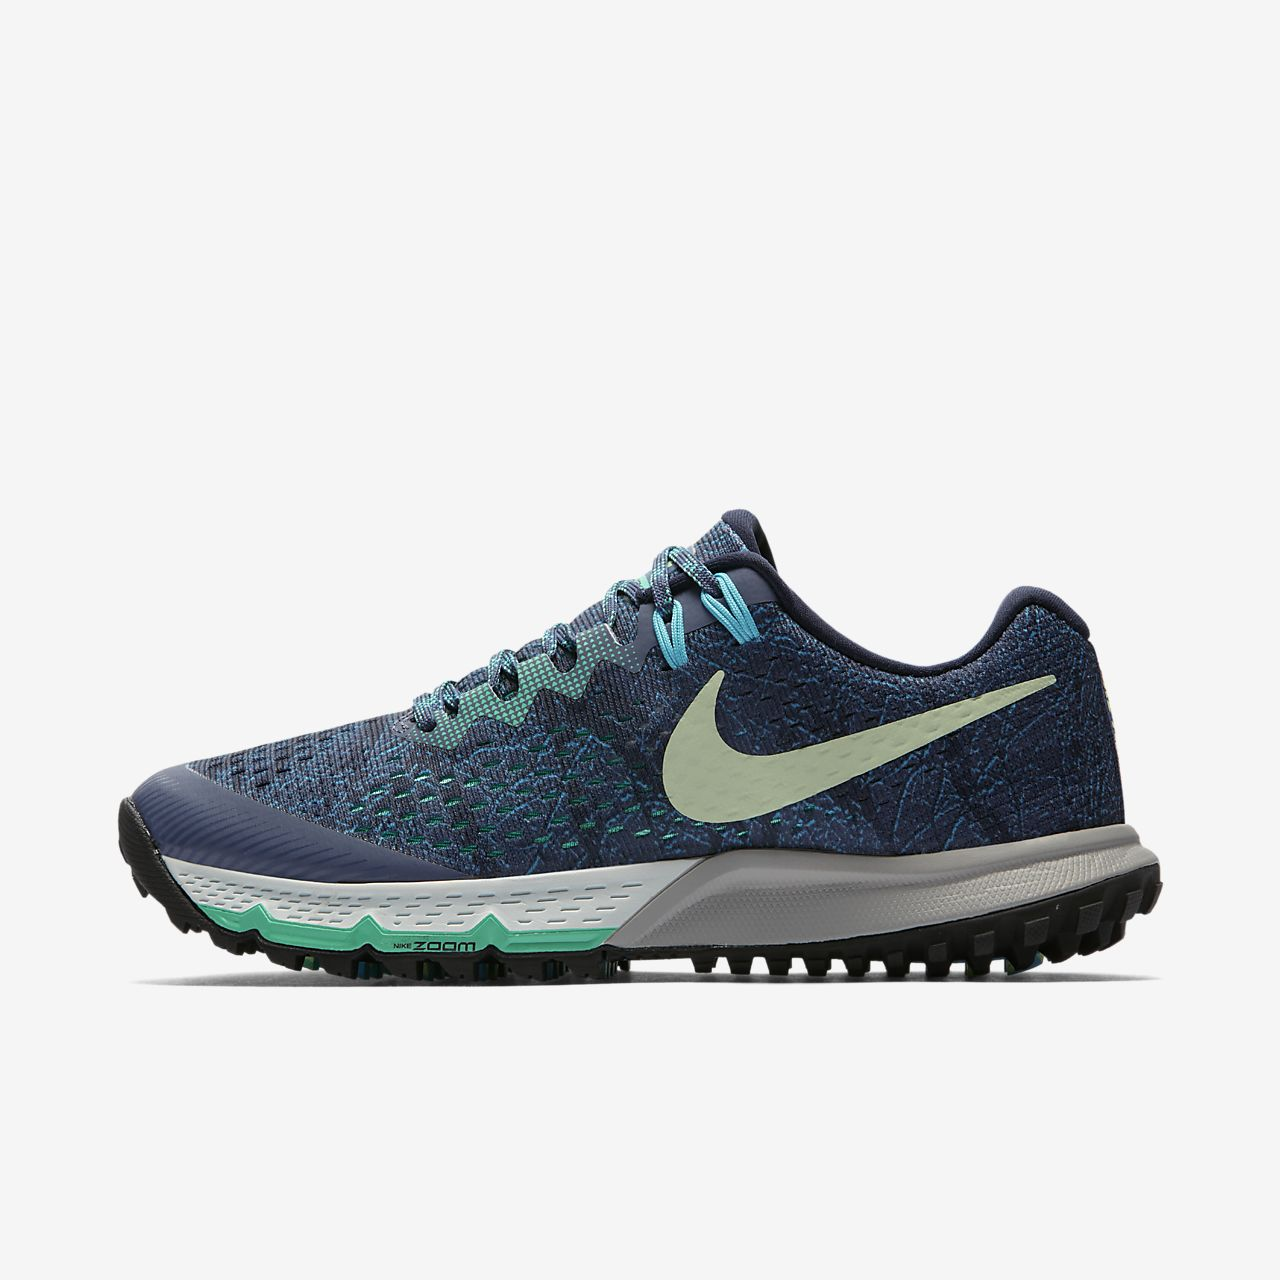 check out 28b26 fb318 ... Chaussure de running Nike Air Zoom Terra Kiger 4 pour Femme